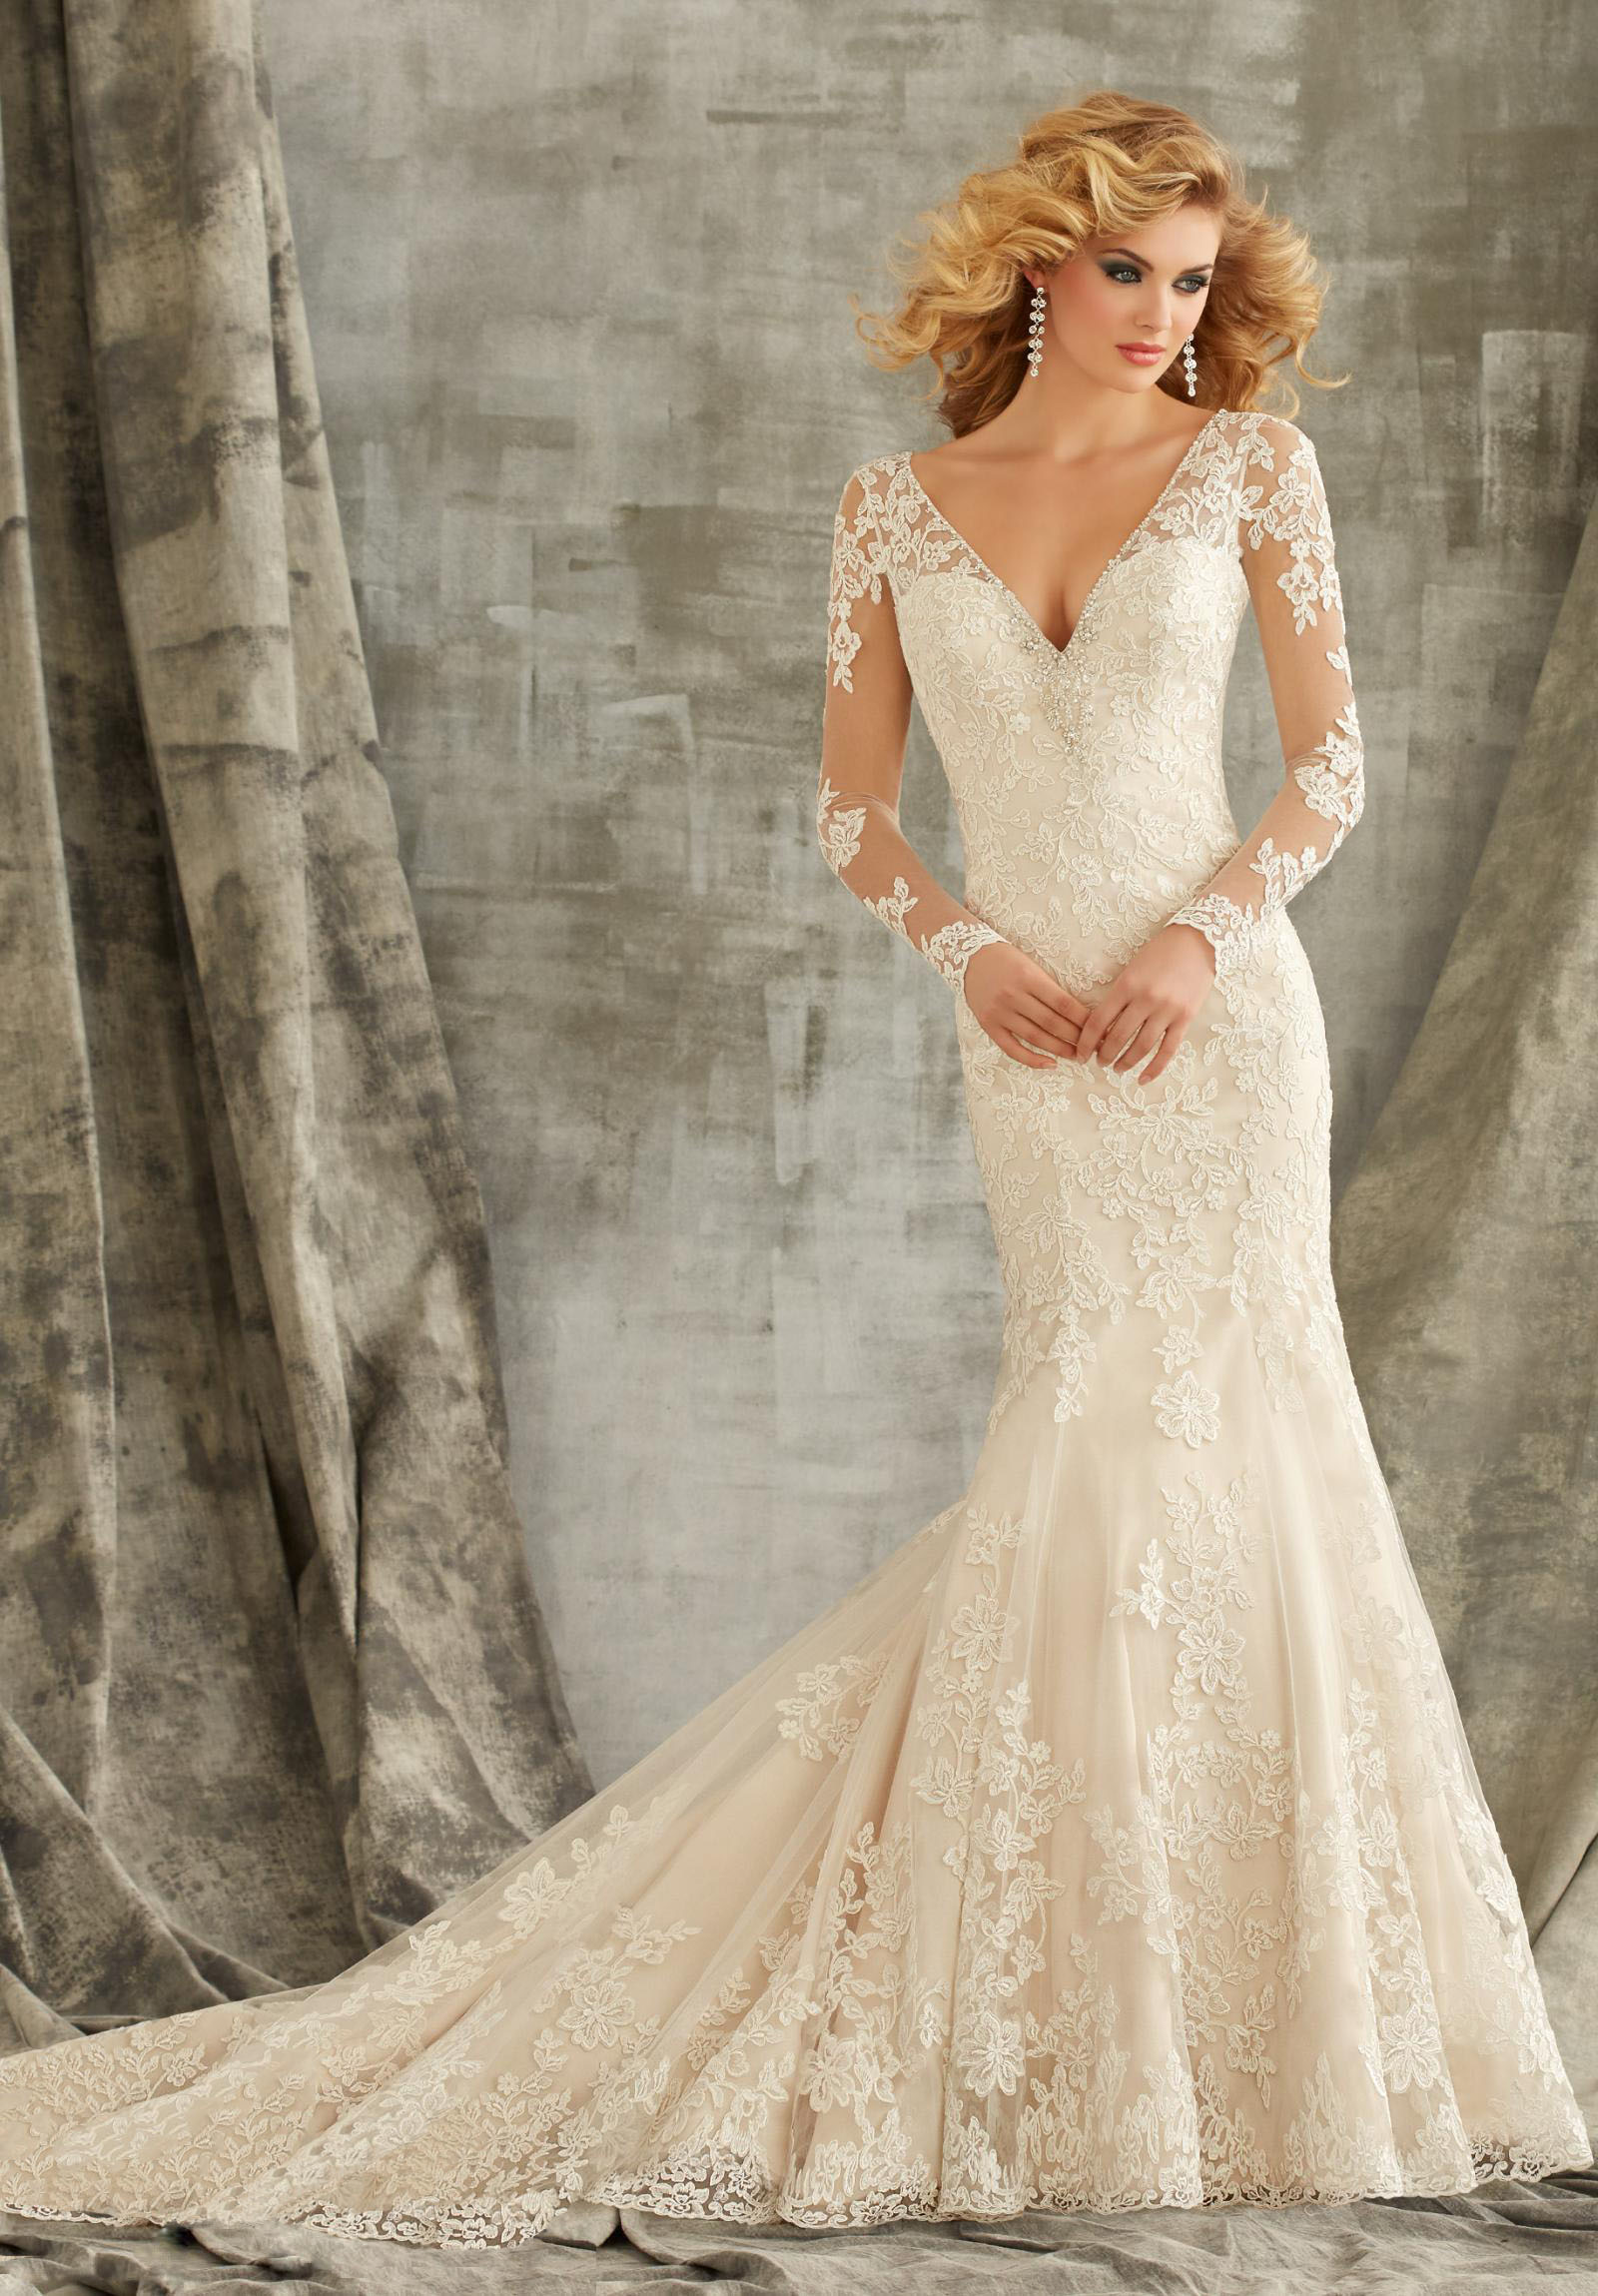 Classy Wedding Dresses with Sleeves